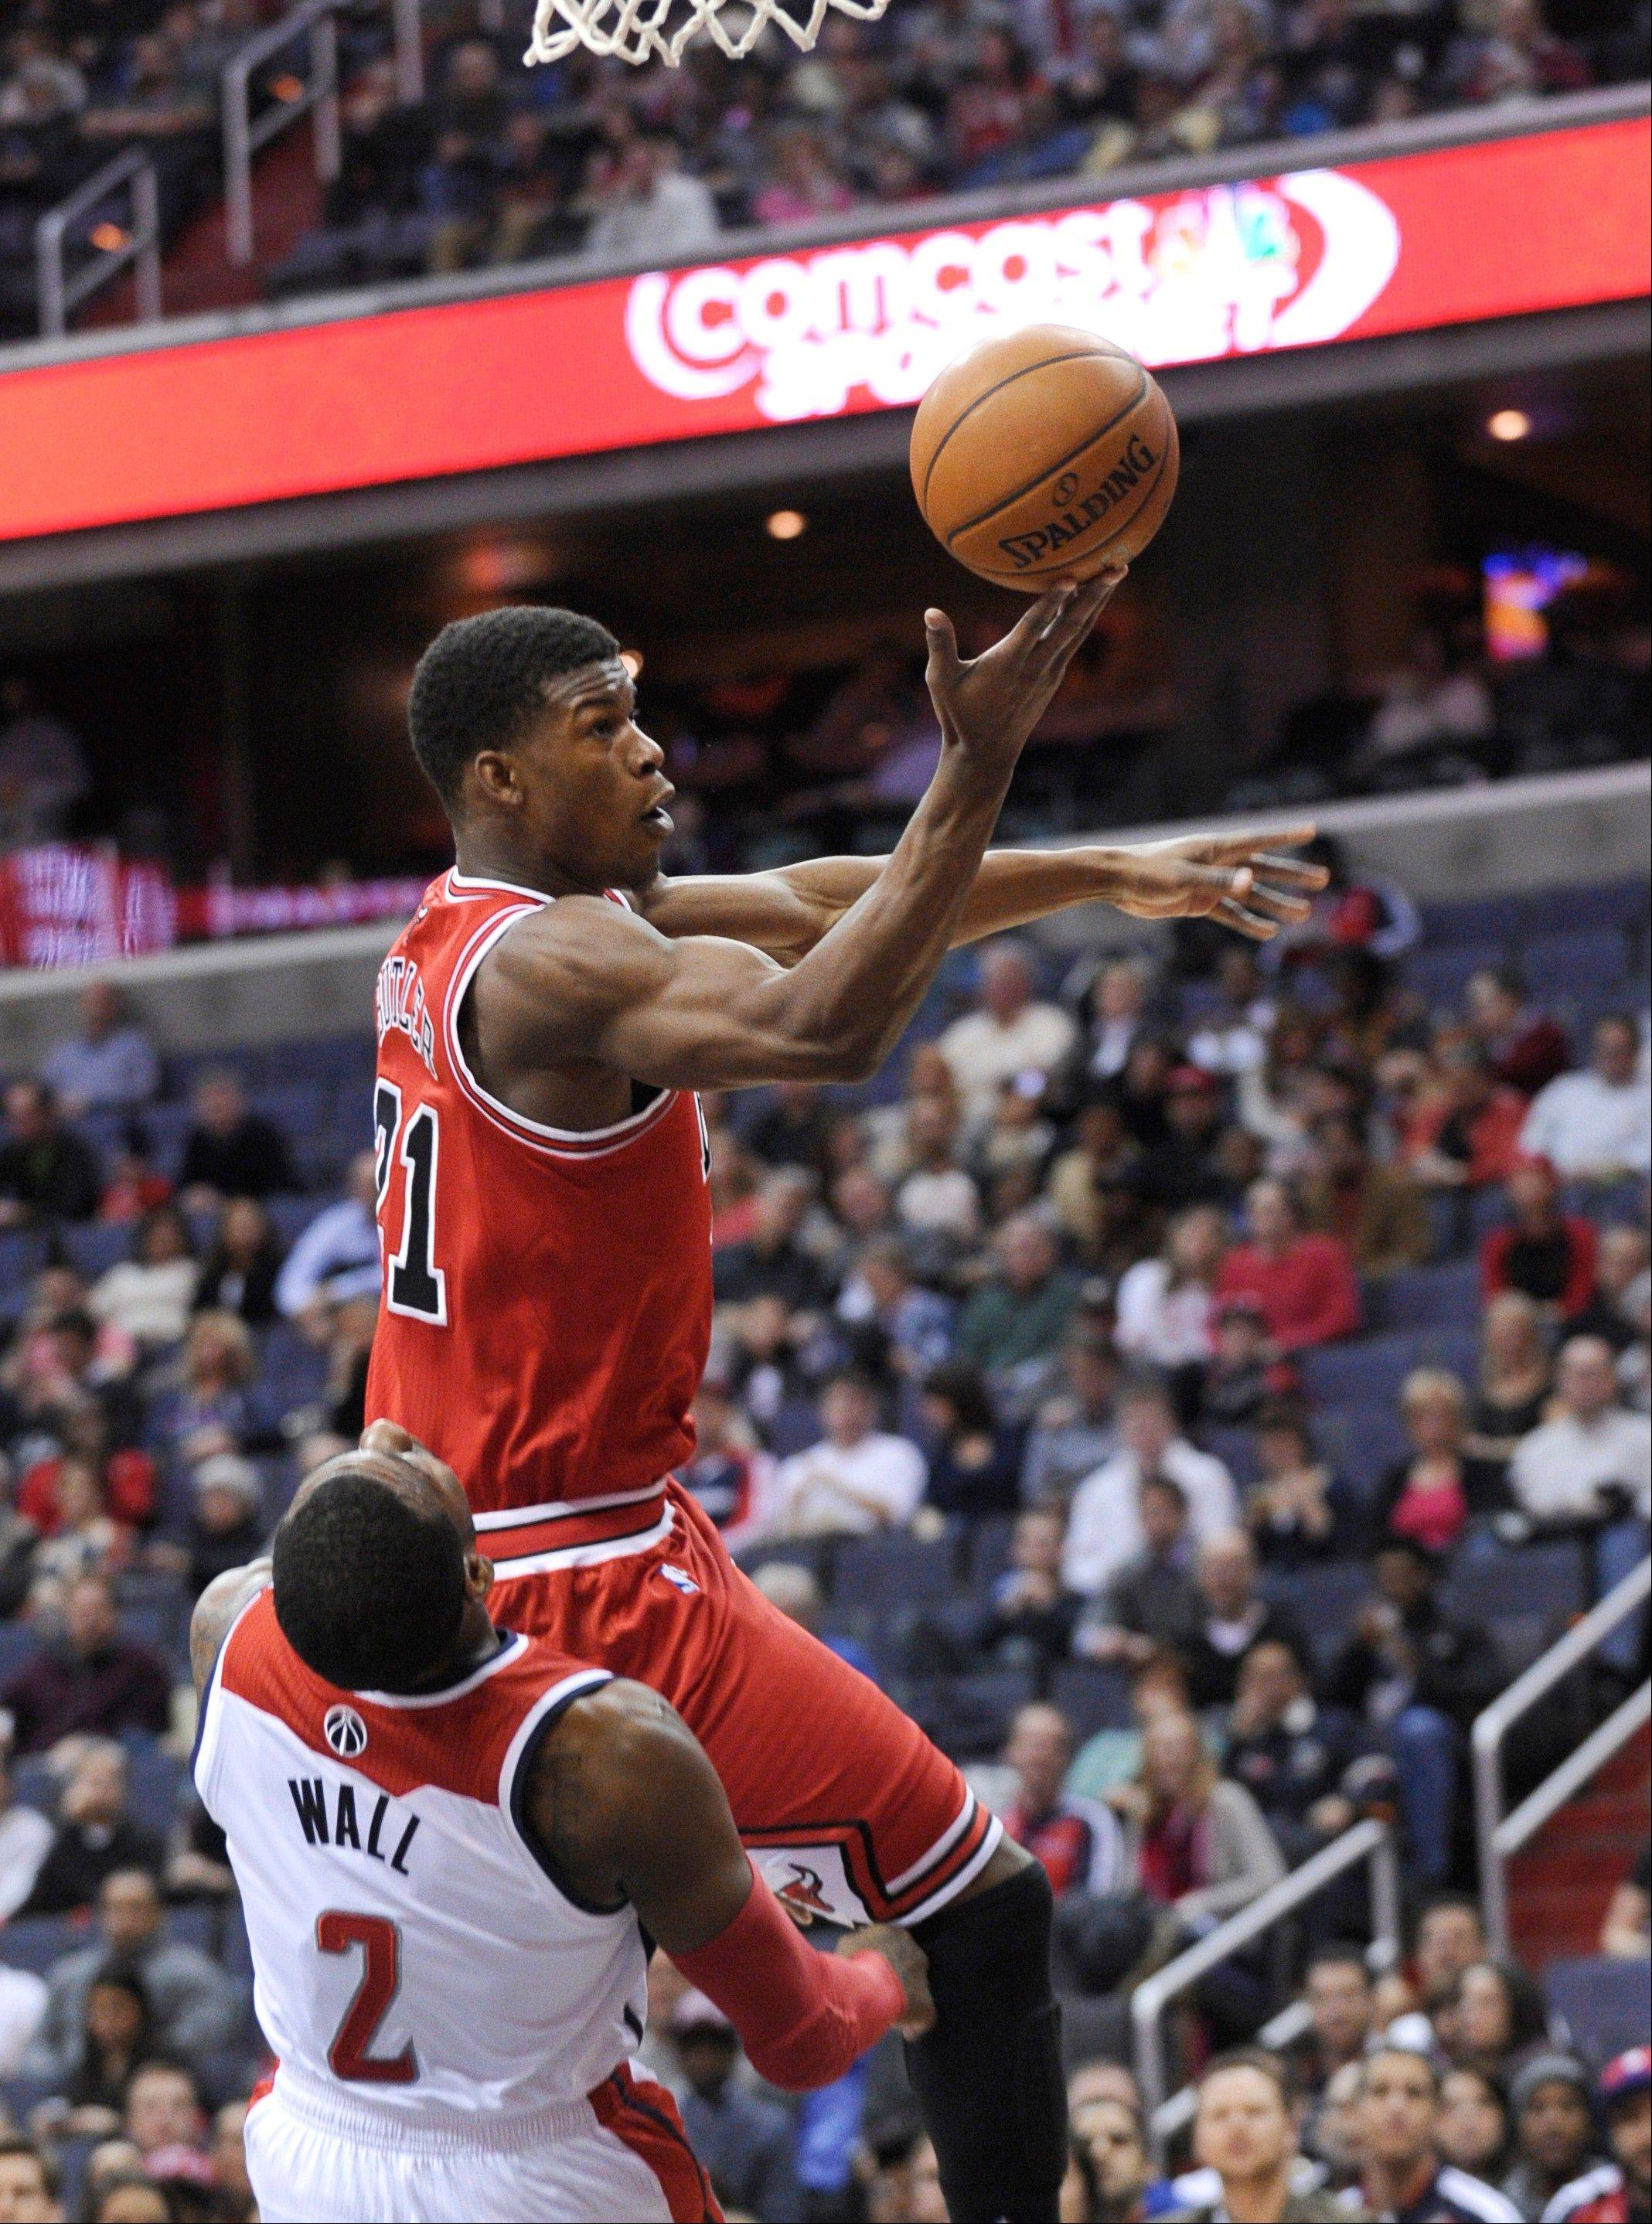 The Bulls' Jimmy Butler makes a strong move to the basket over John Wall of the Wizards on Friday in Washington.